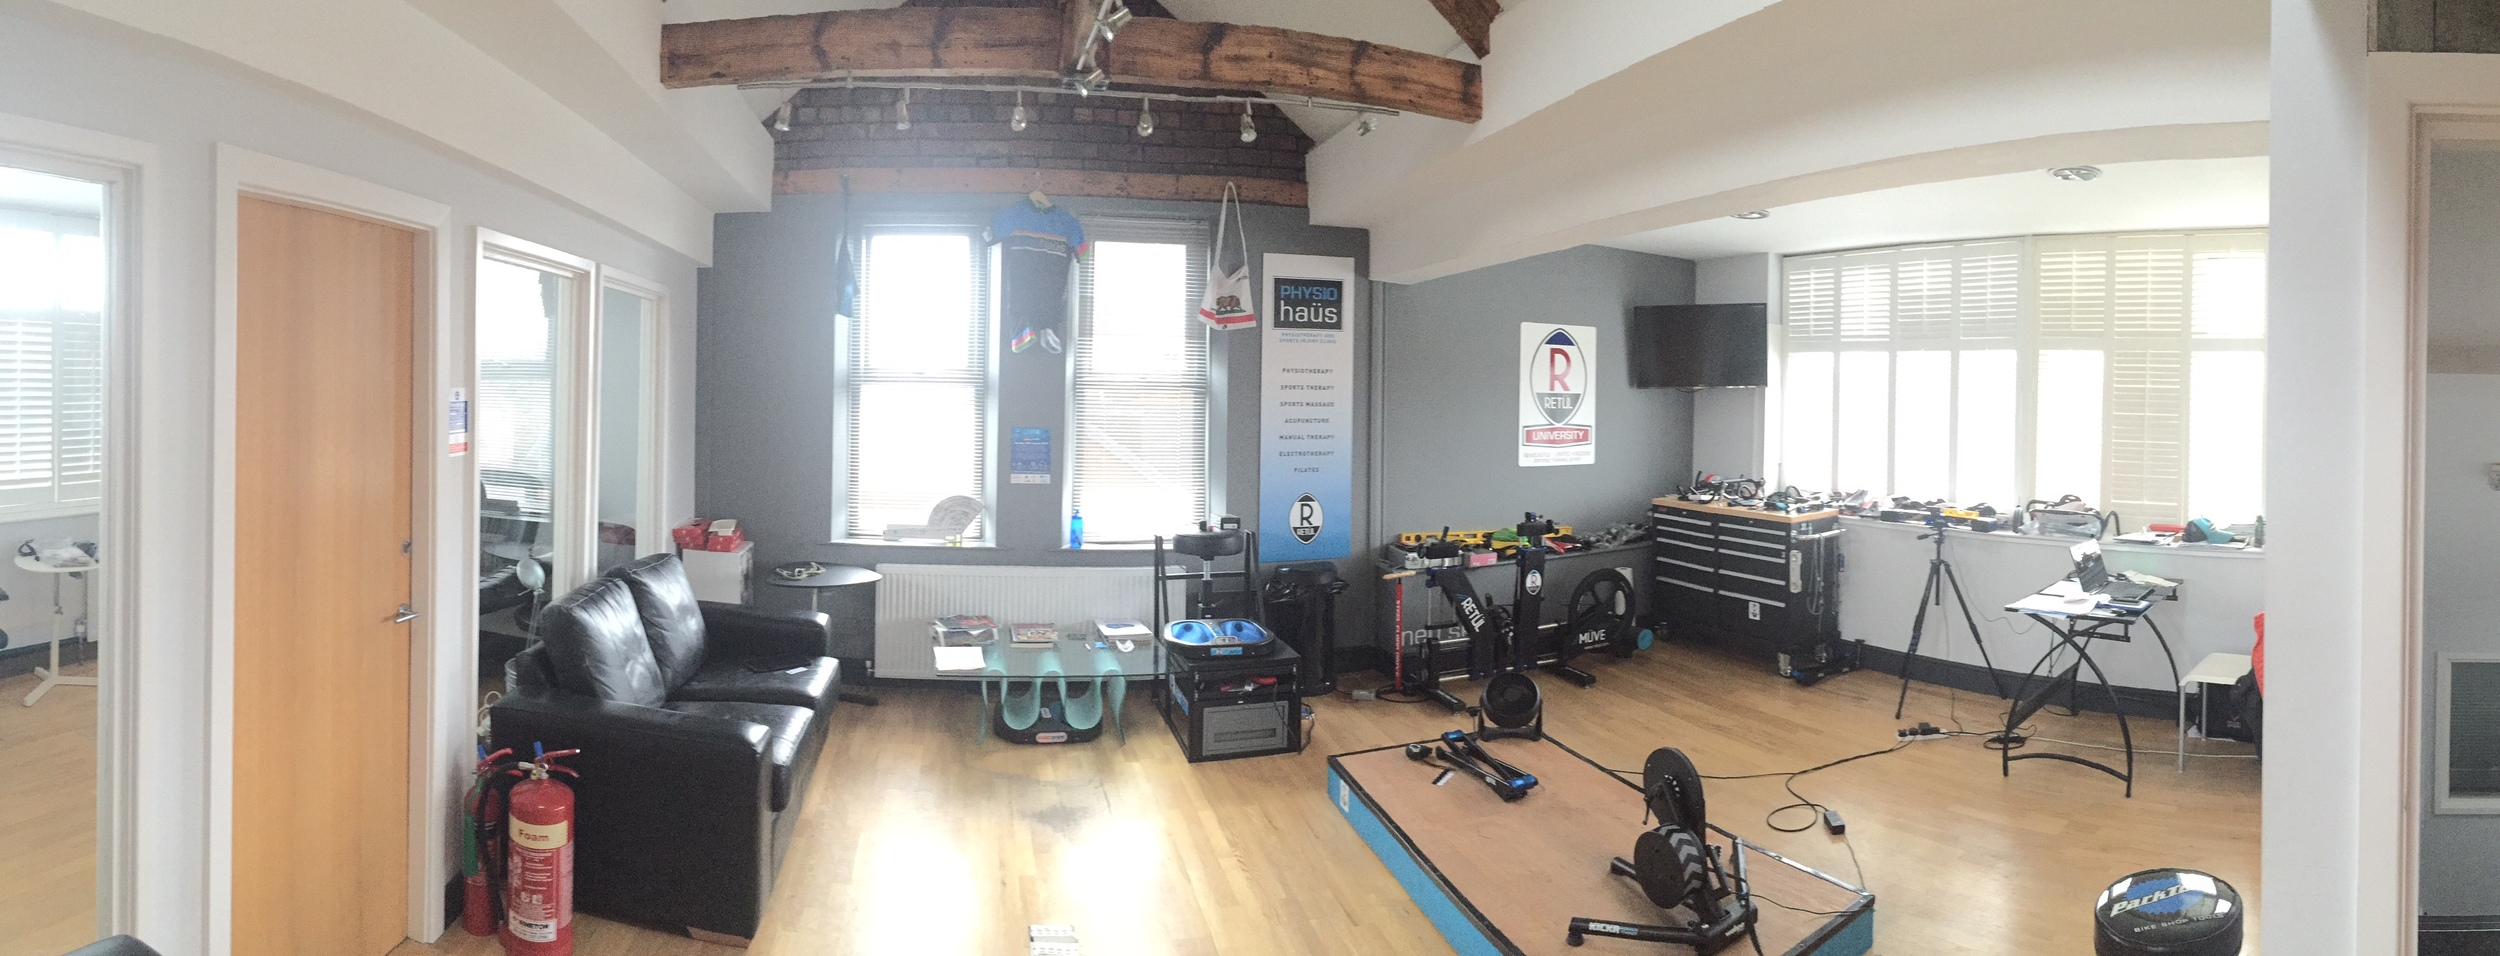 Bike fit studio and training space at Physiohaus, Newcastle.